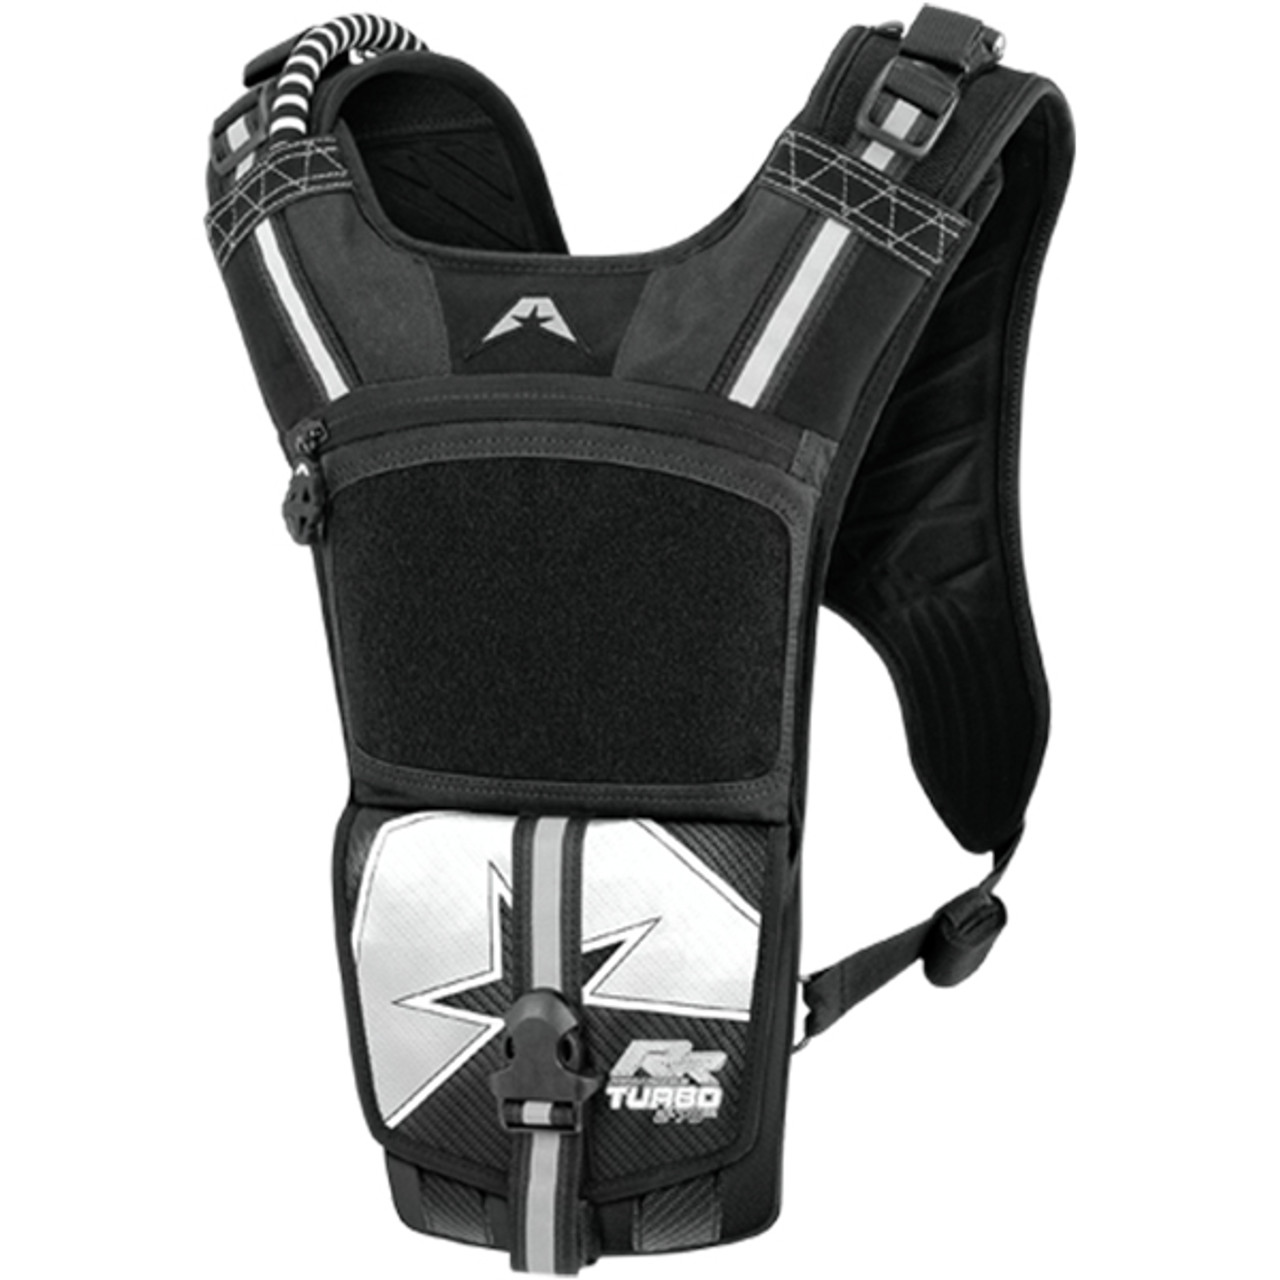 American Kargo Black Turbo 3 Liter Textile Motorcycle Offroad Hydration Backpack